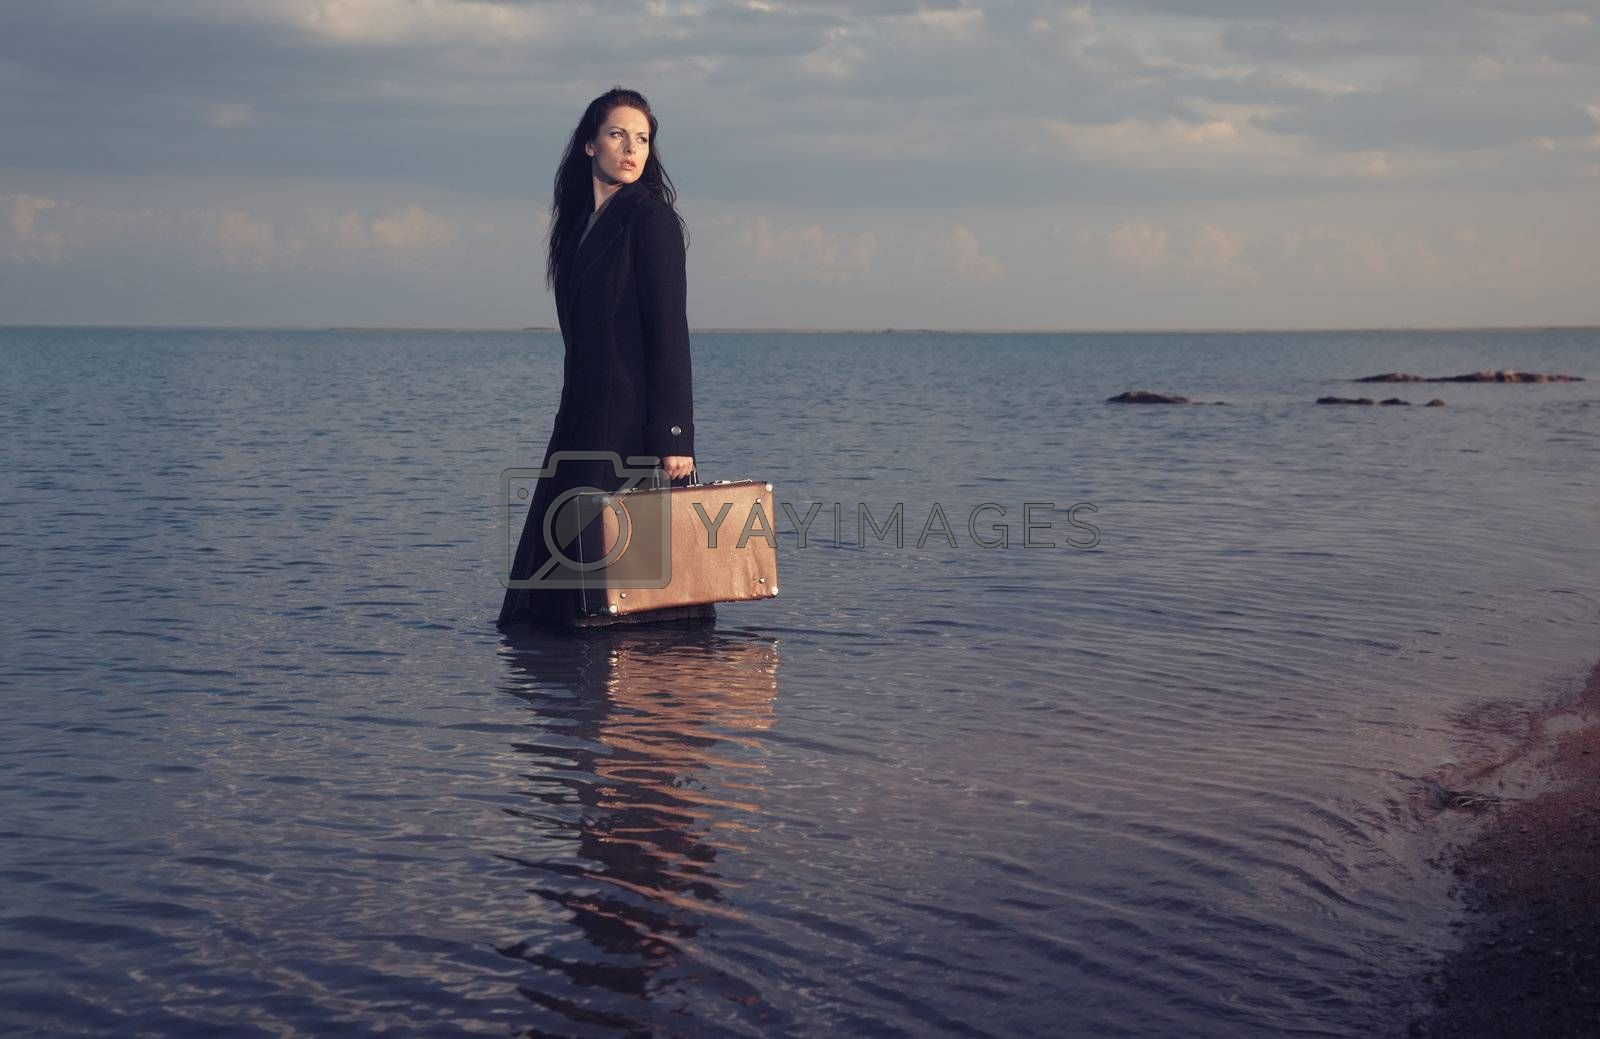 Lady in coat standing in the sea with travel bag